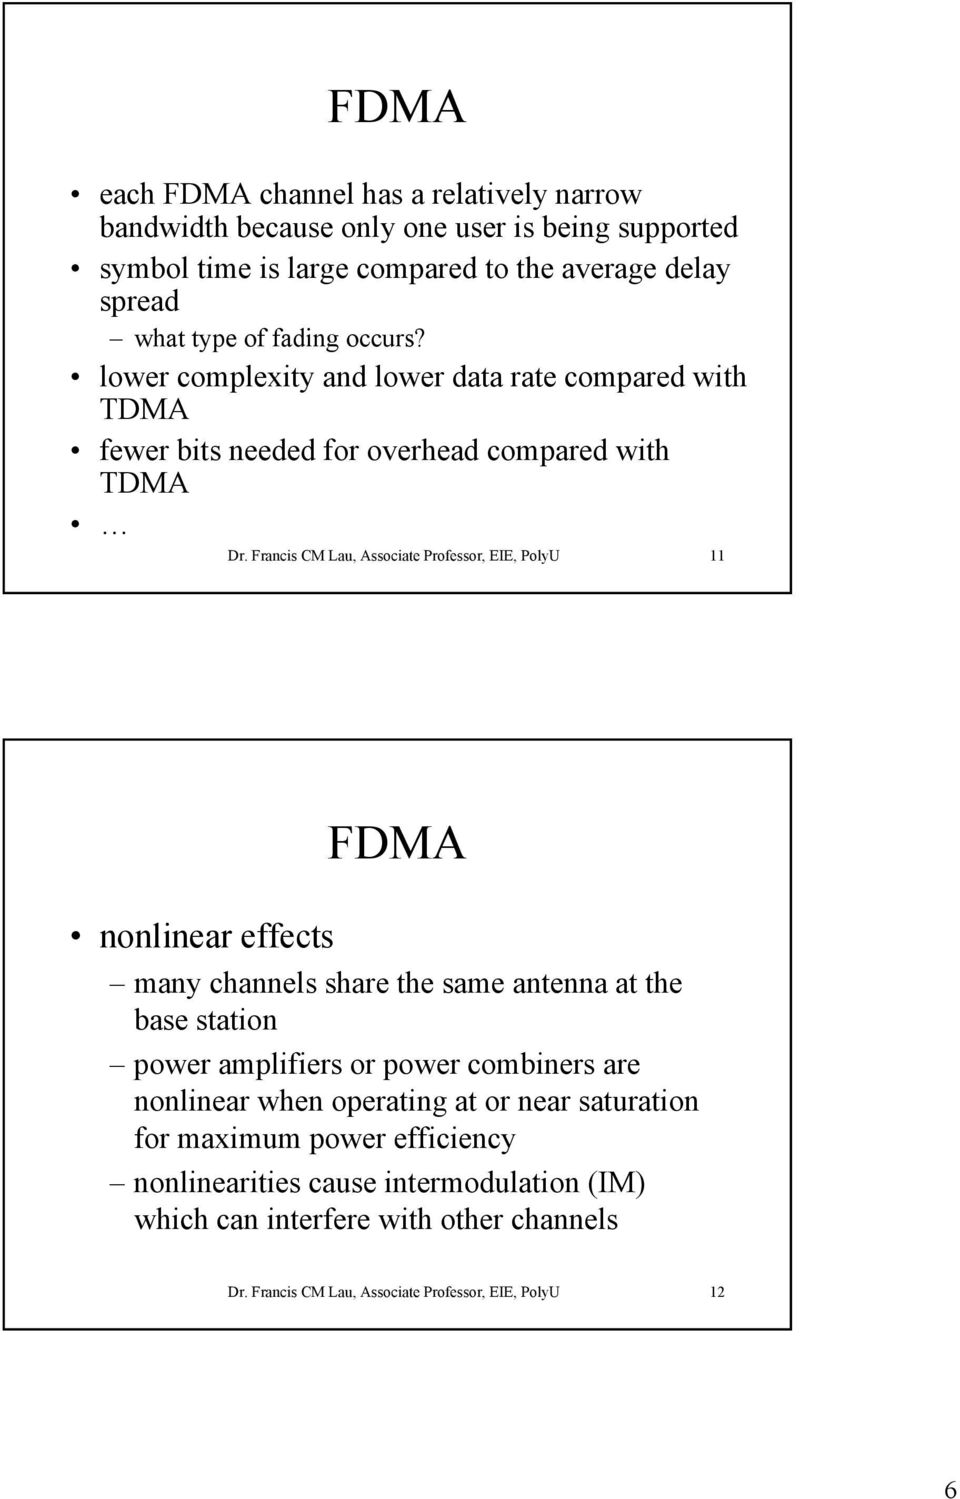 Francis CM Lau, Associate Professor, EIE, PolyU nonlinear effects FDMA many channels share the same antenna at the base station power amplifiers or power combiners are